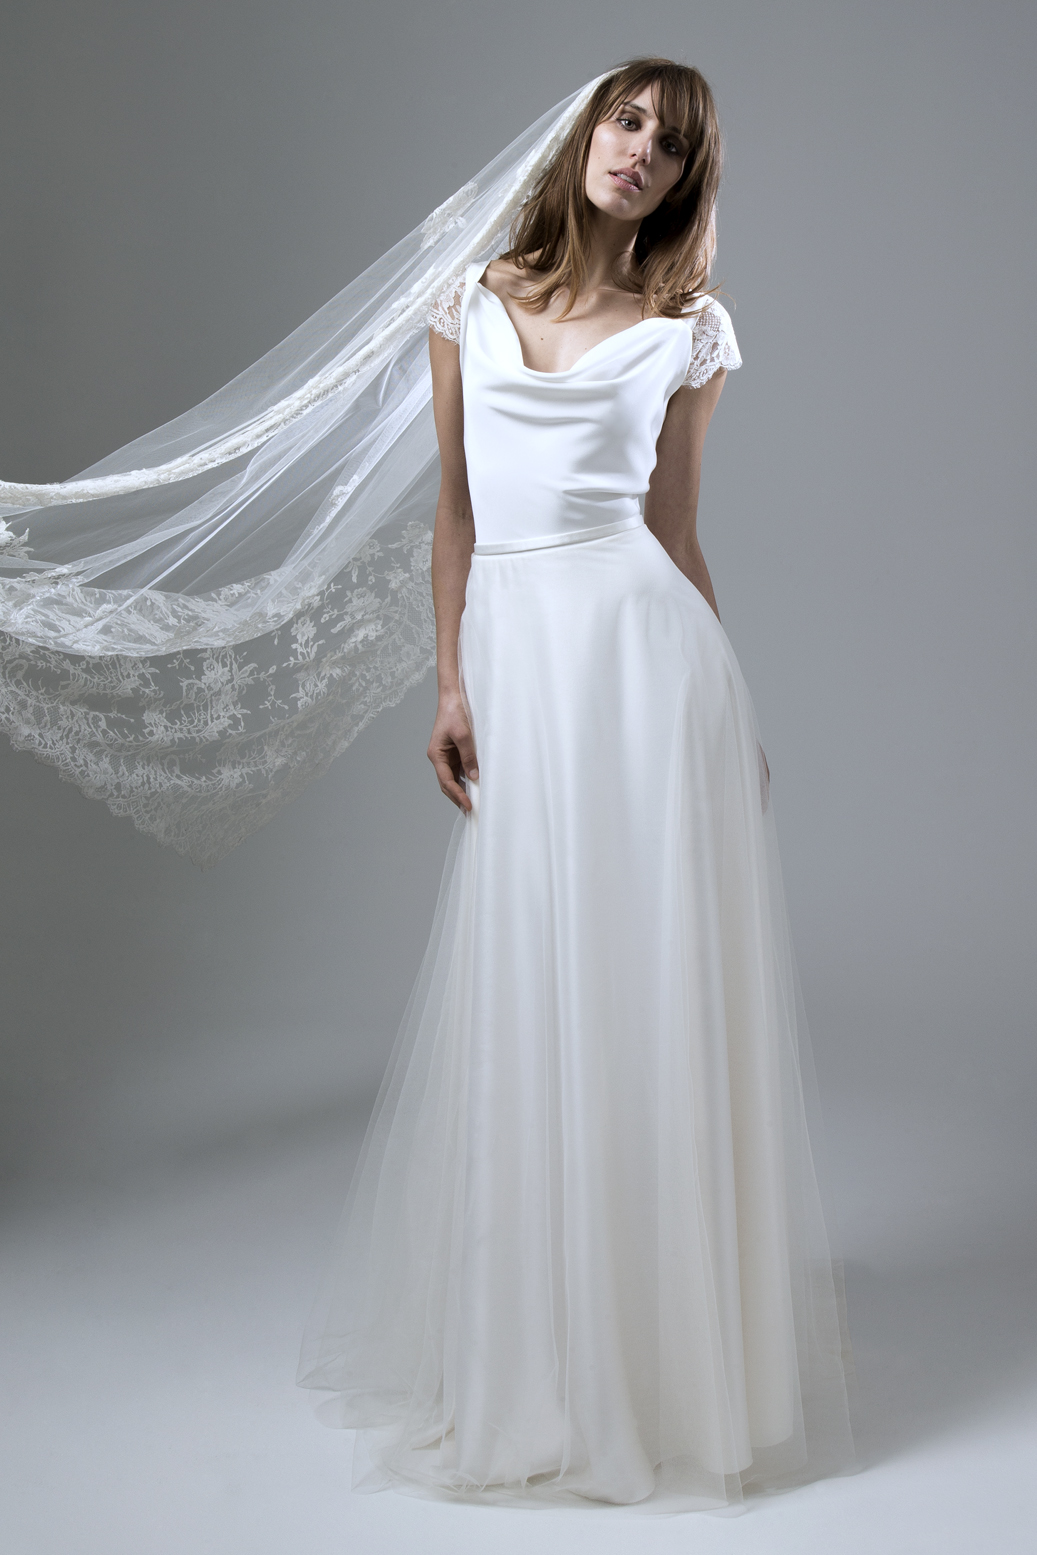 Clare wedding dress with cap sleeves by Halfpenny London